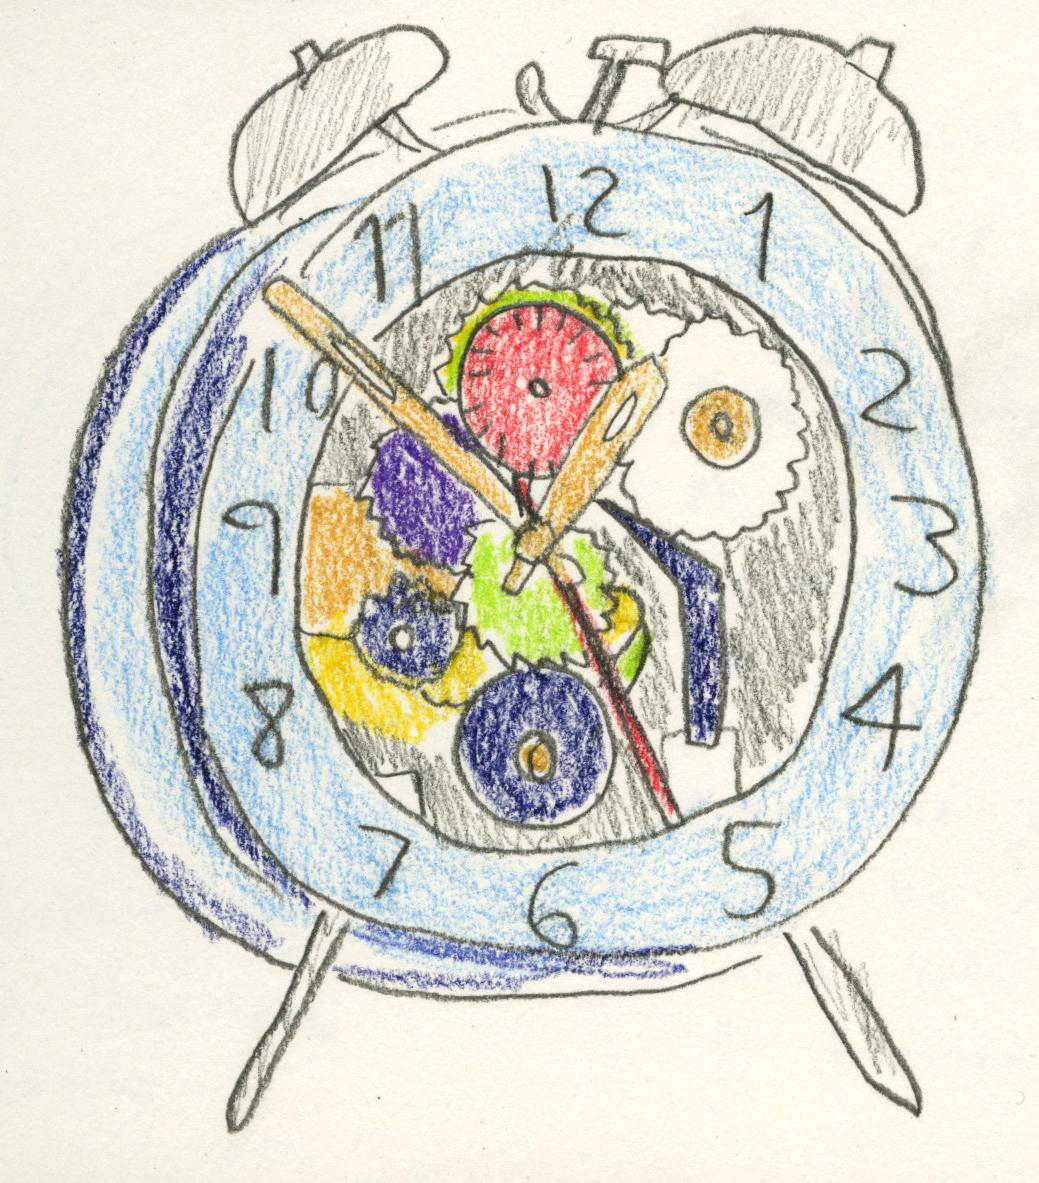 Coloured pencil sketch of the translucent clockwork alarm clock